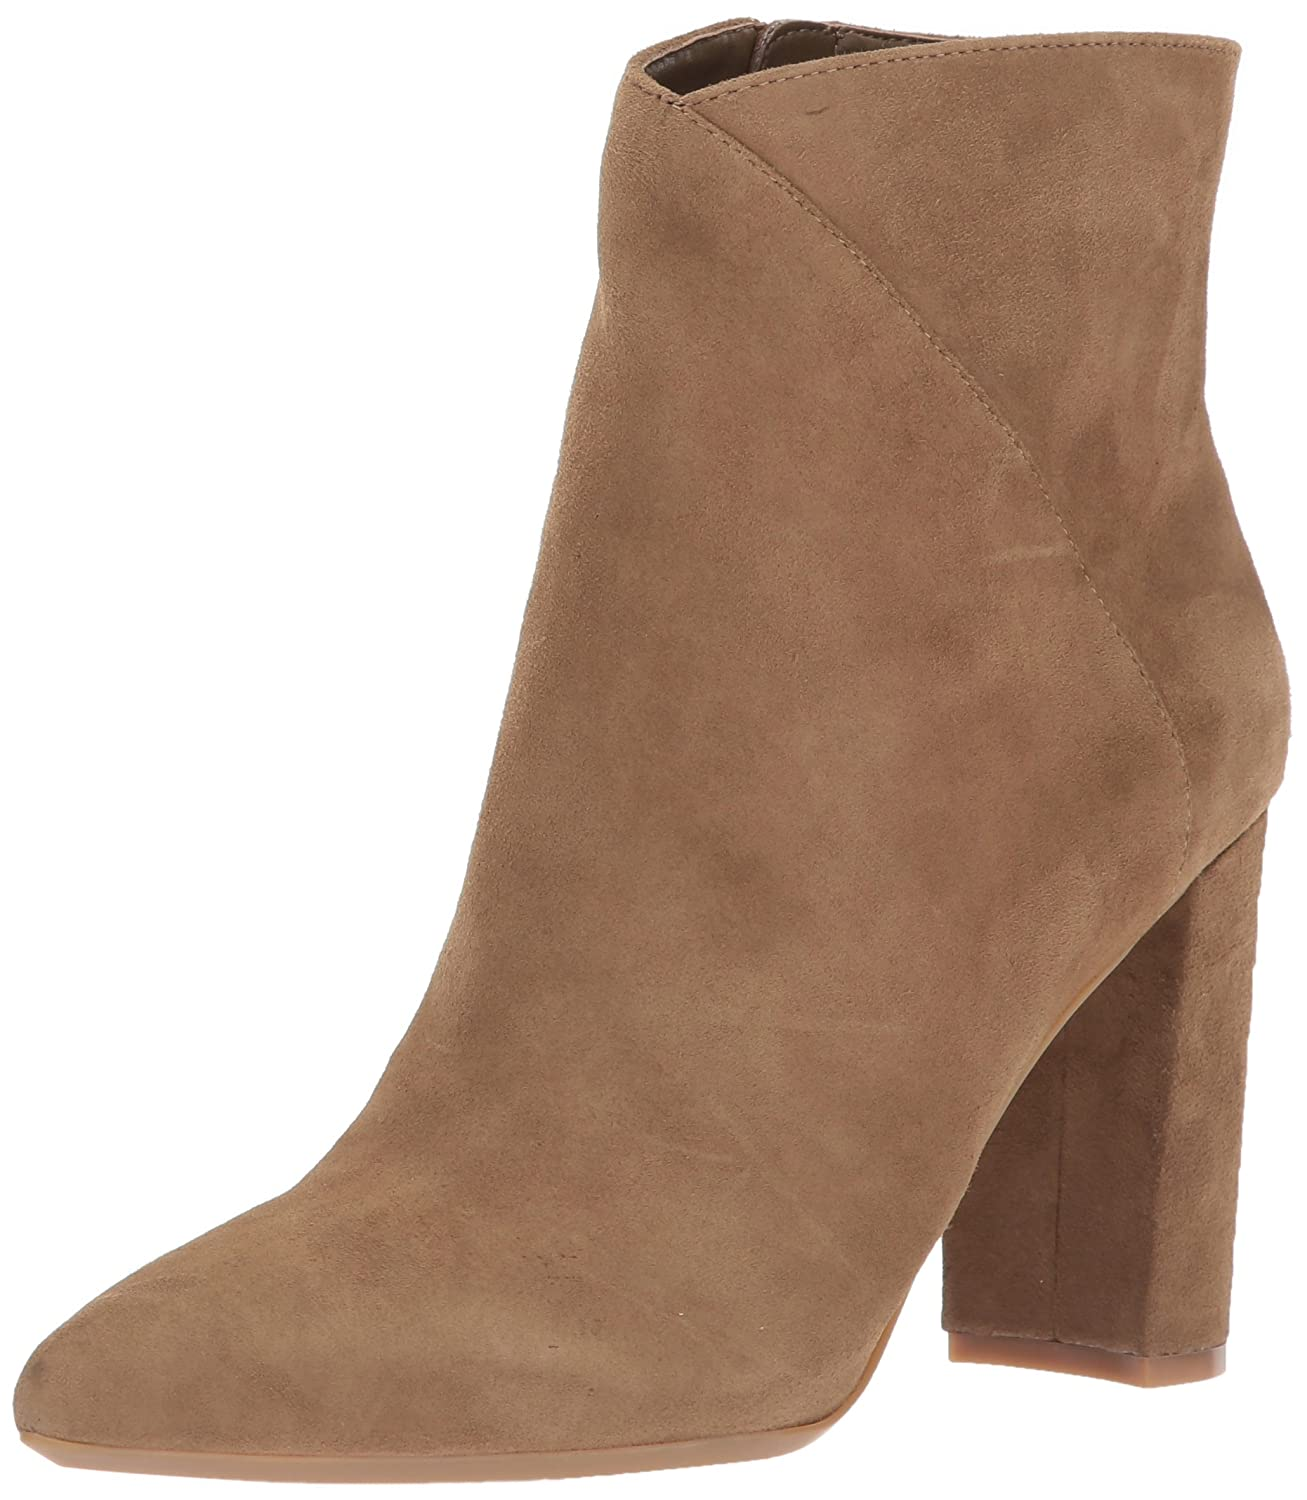 Nine West Women's Argyle Ankle Boot B06W556S79 8 B(M) US|Green Suede